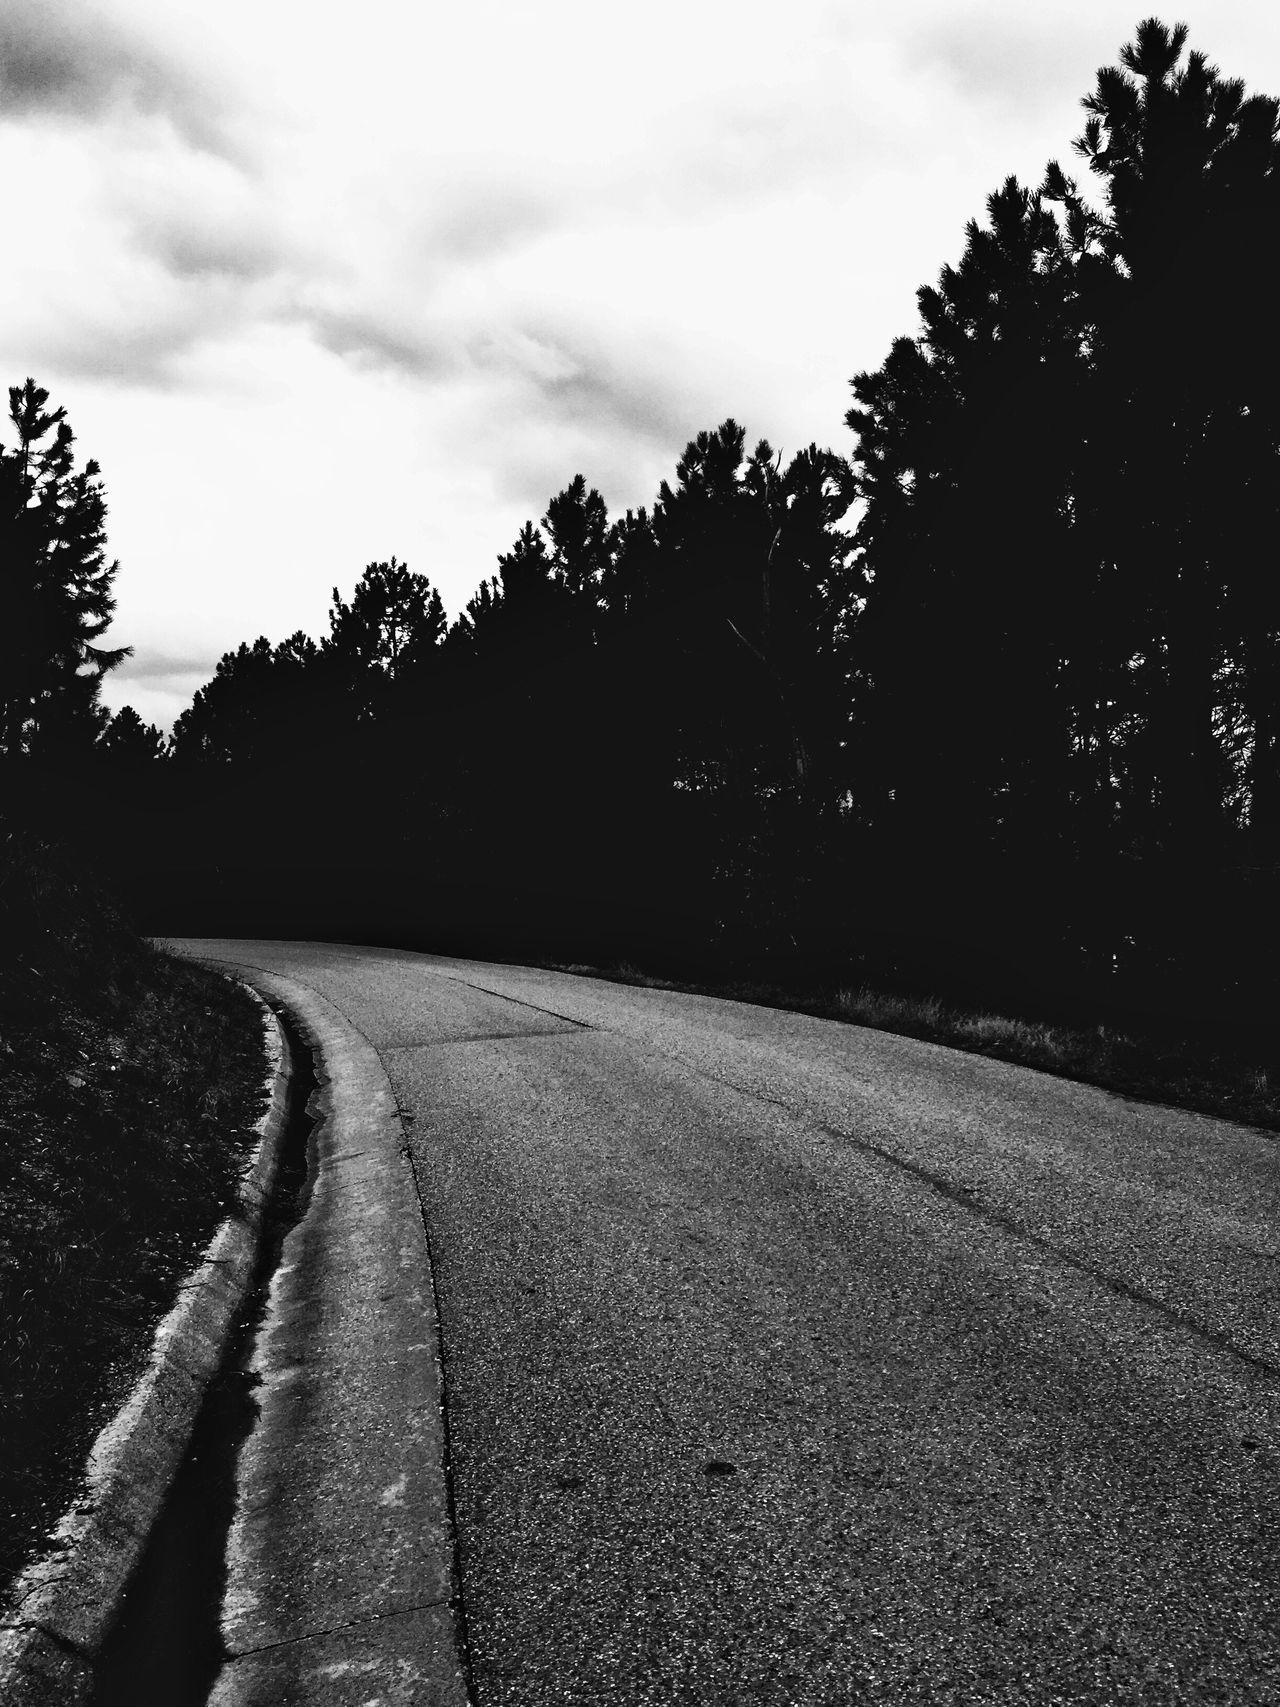 On the road ... Empty Road The Way Forward No People Bnw_captures Bnw_collection Blackandwhite Photography Blackandwhite